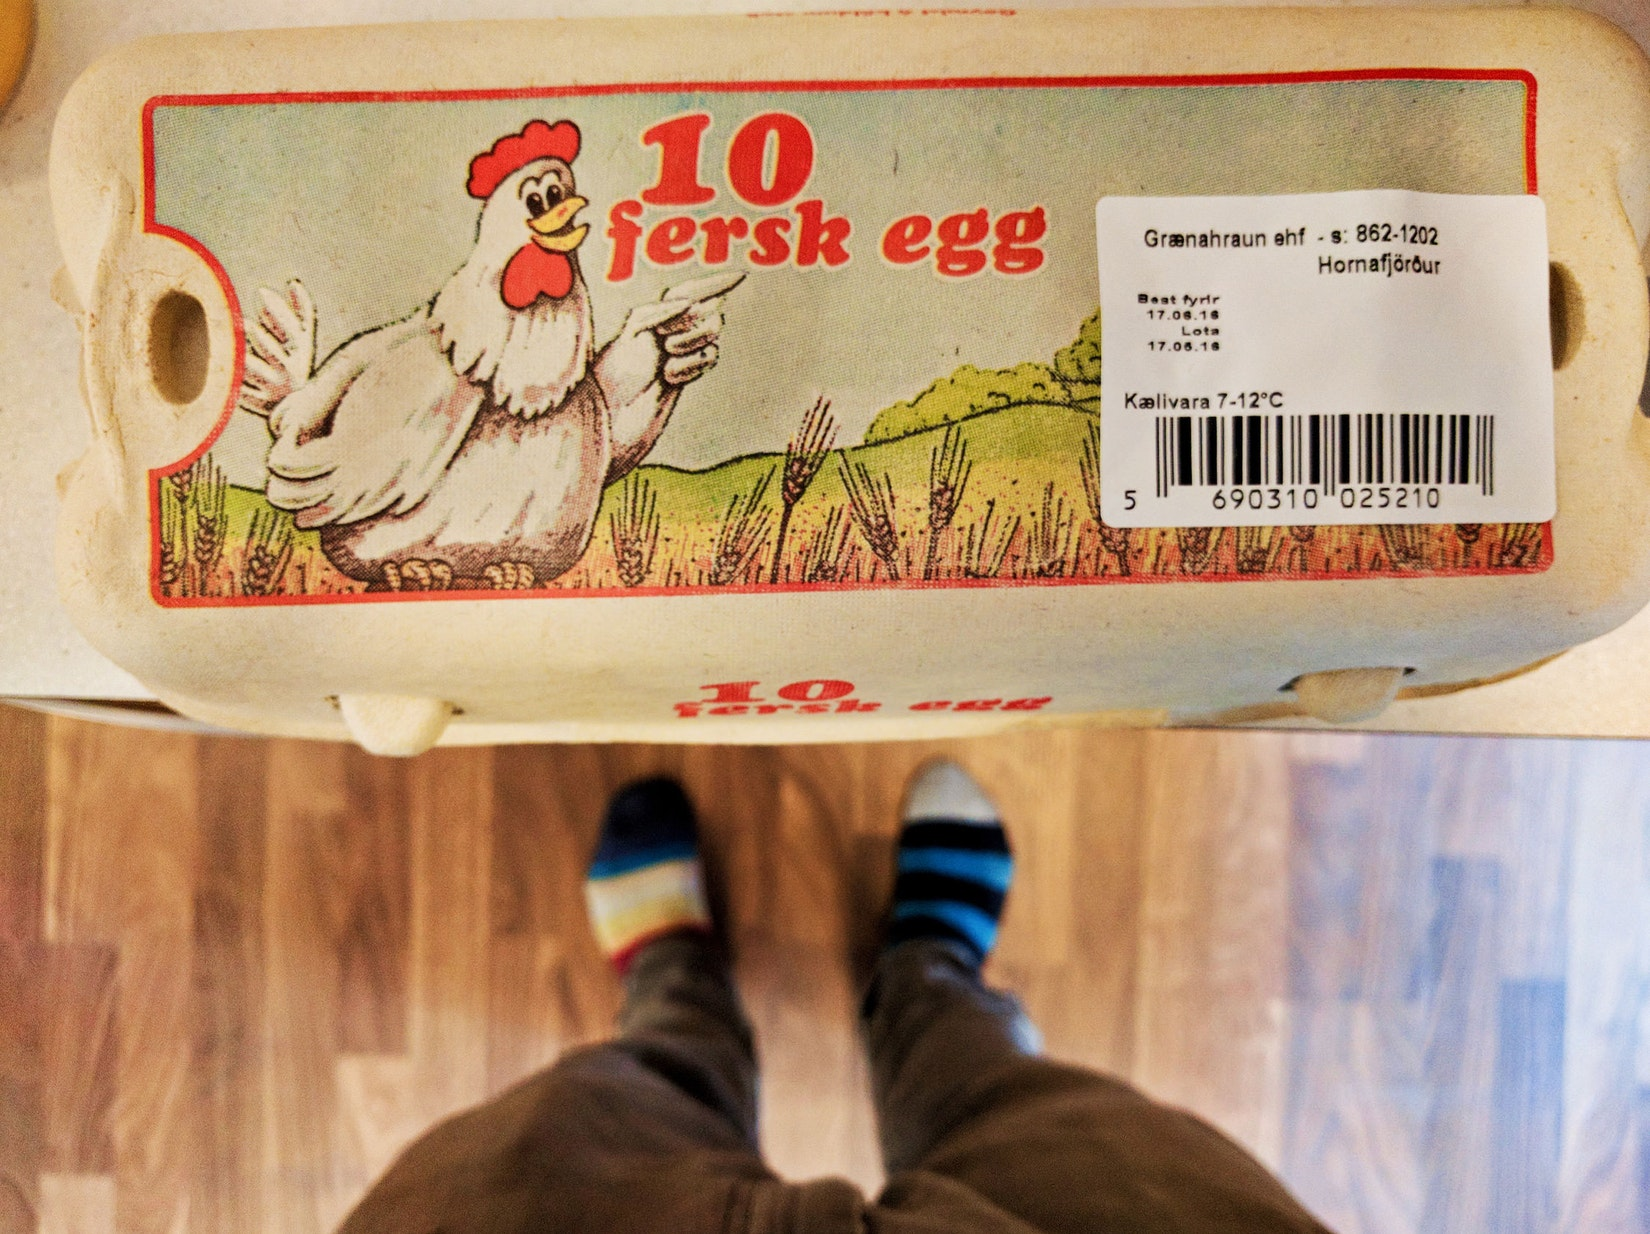 Carton of eggs in Iceland